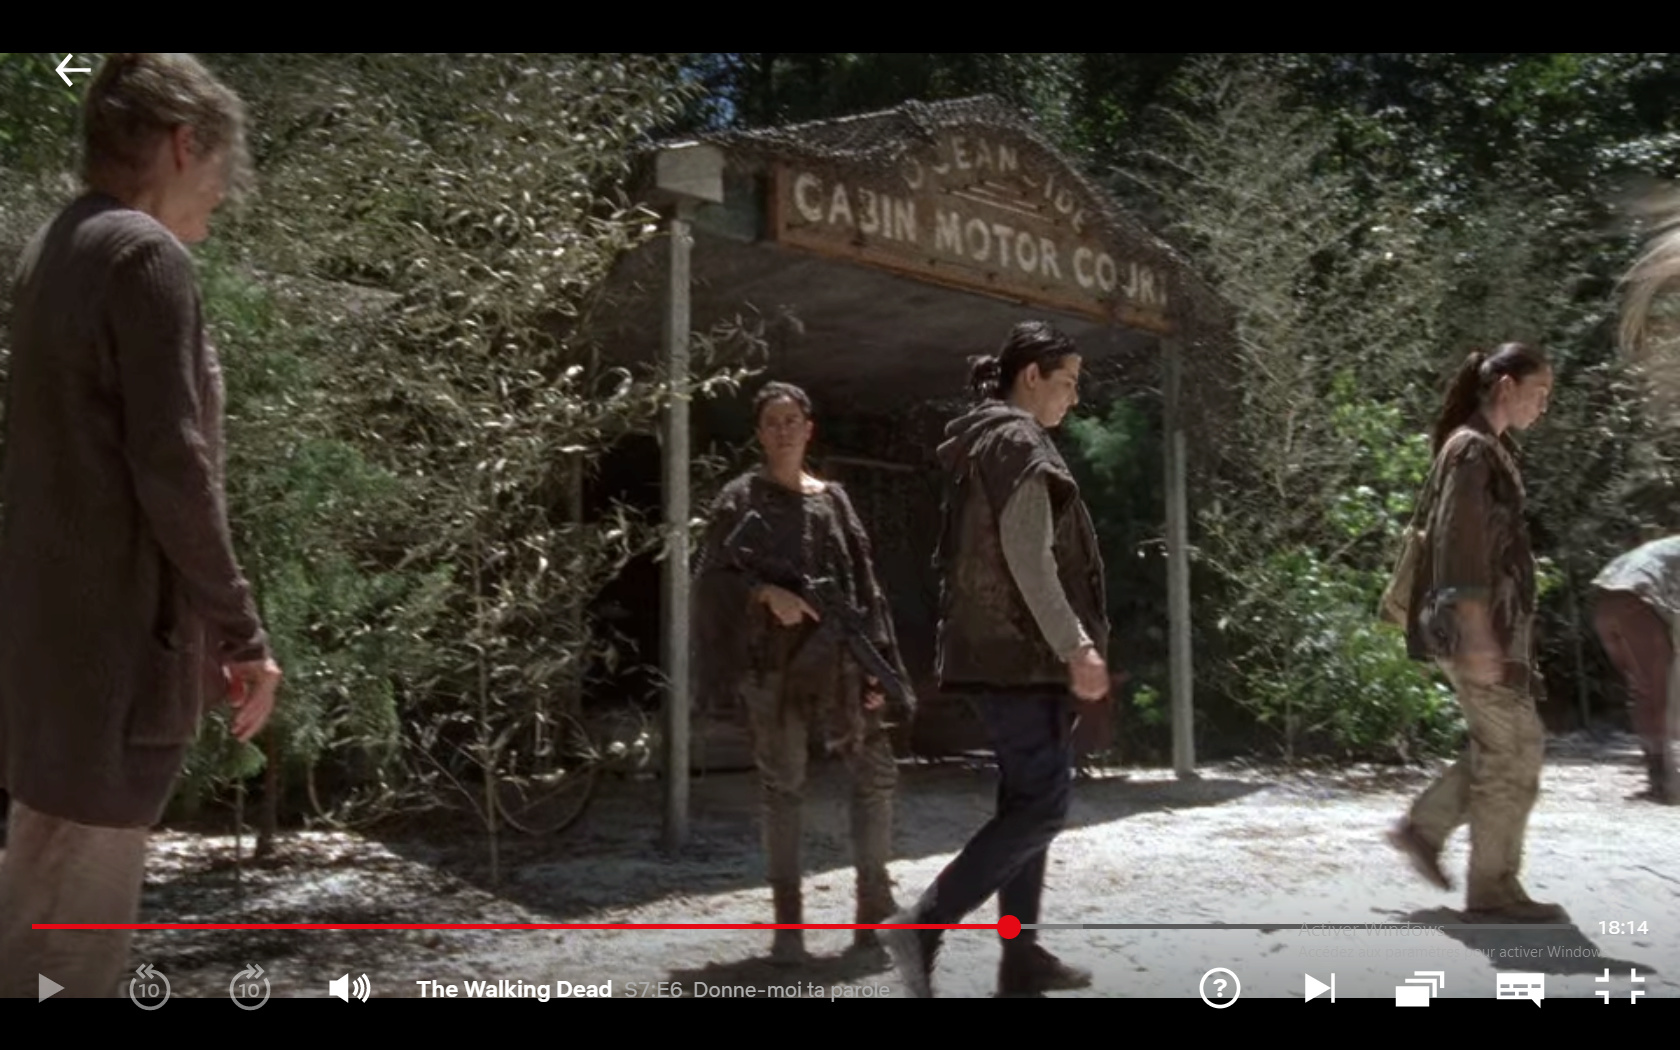 The Walking dead, storybording with Google Earth and Street View - Page 6 Captur21